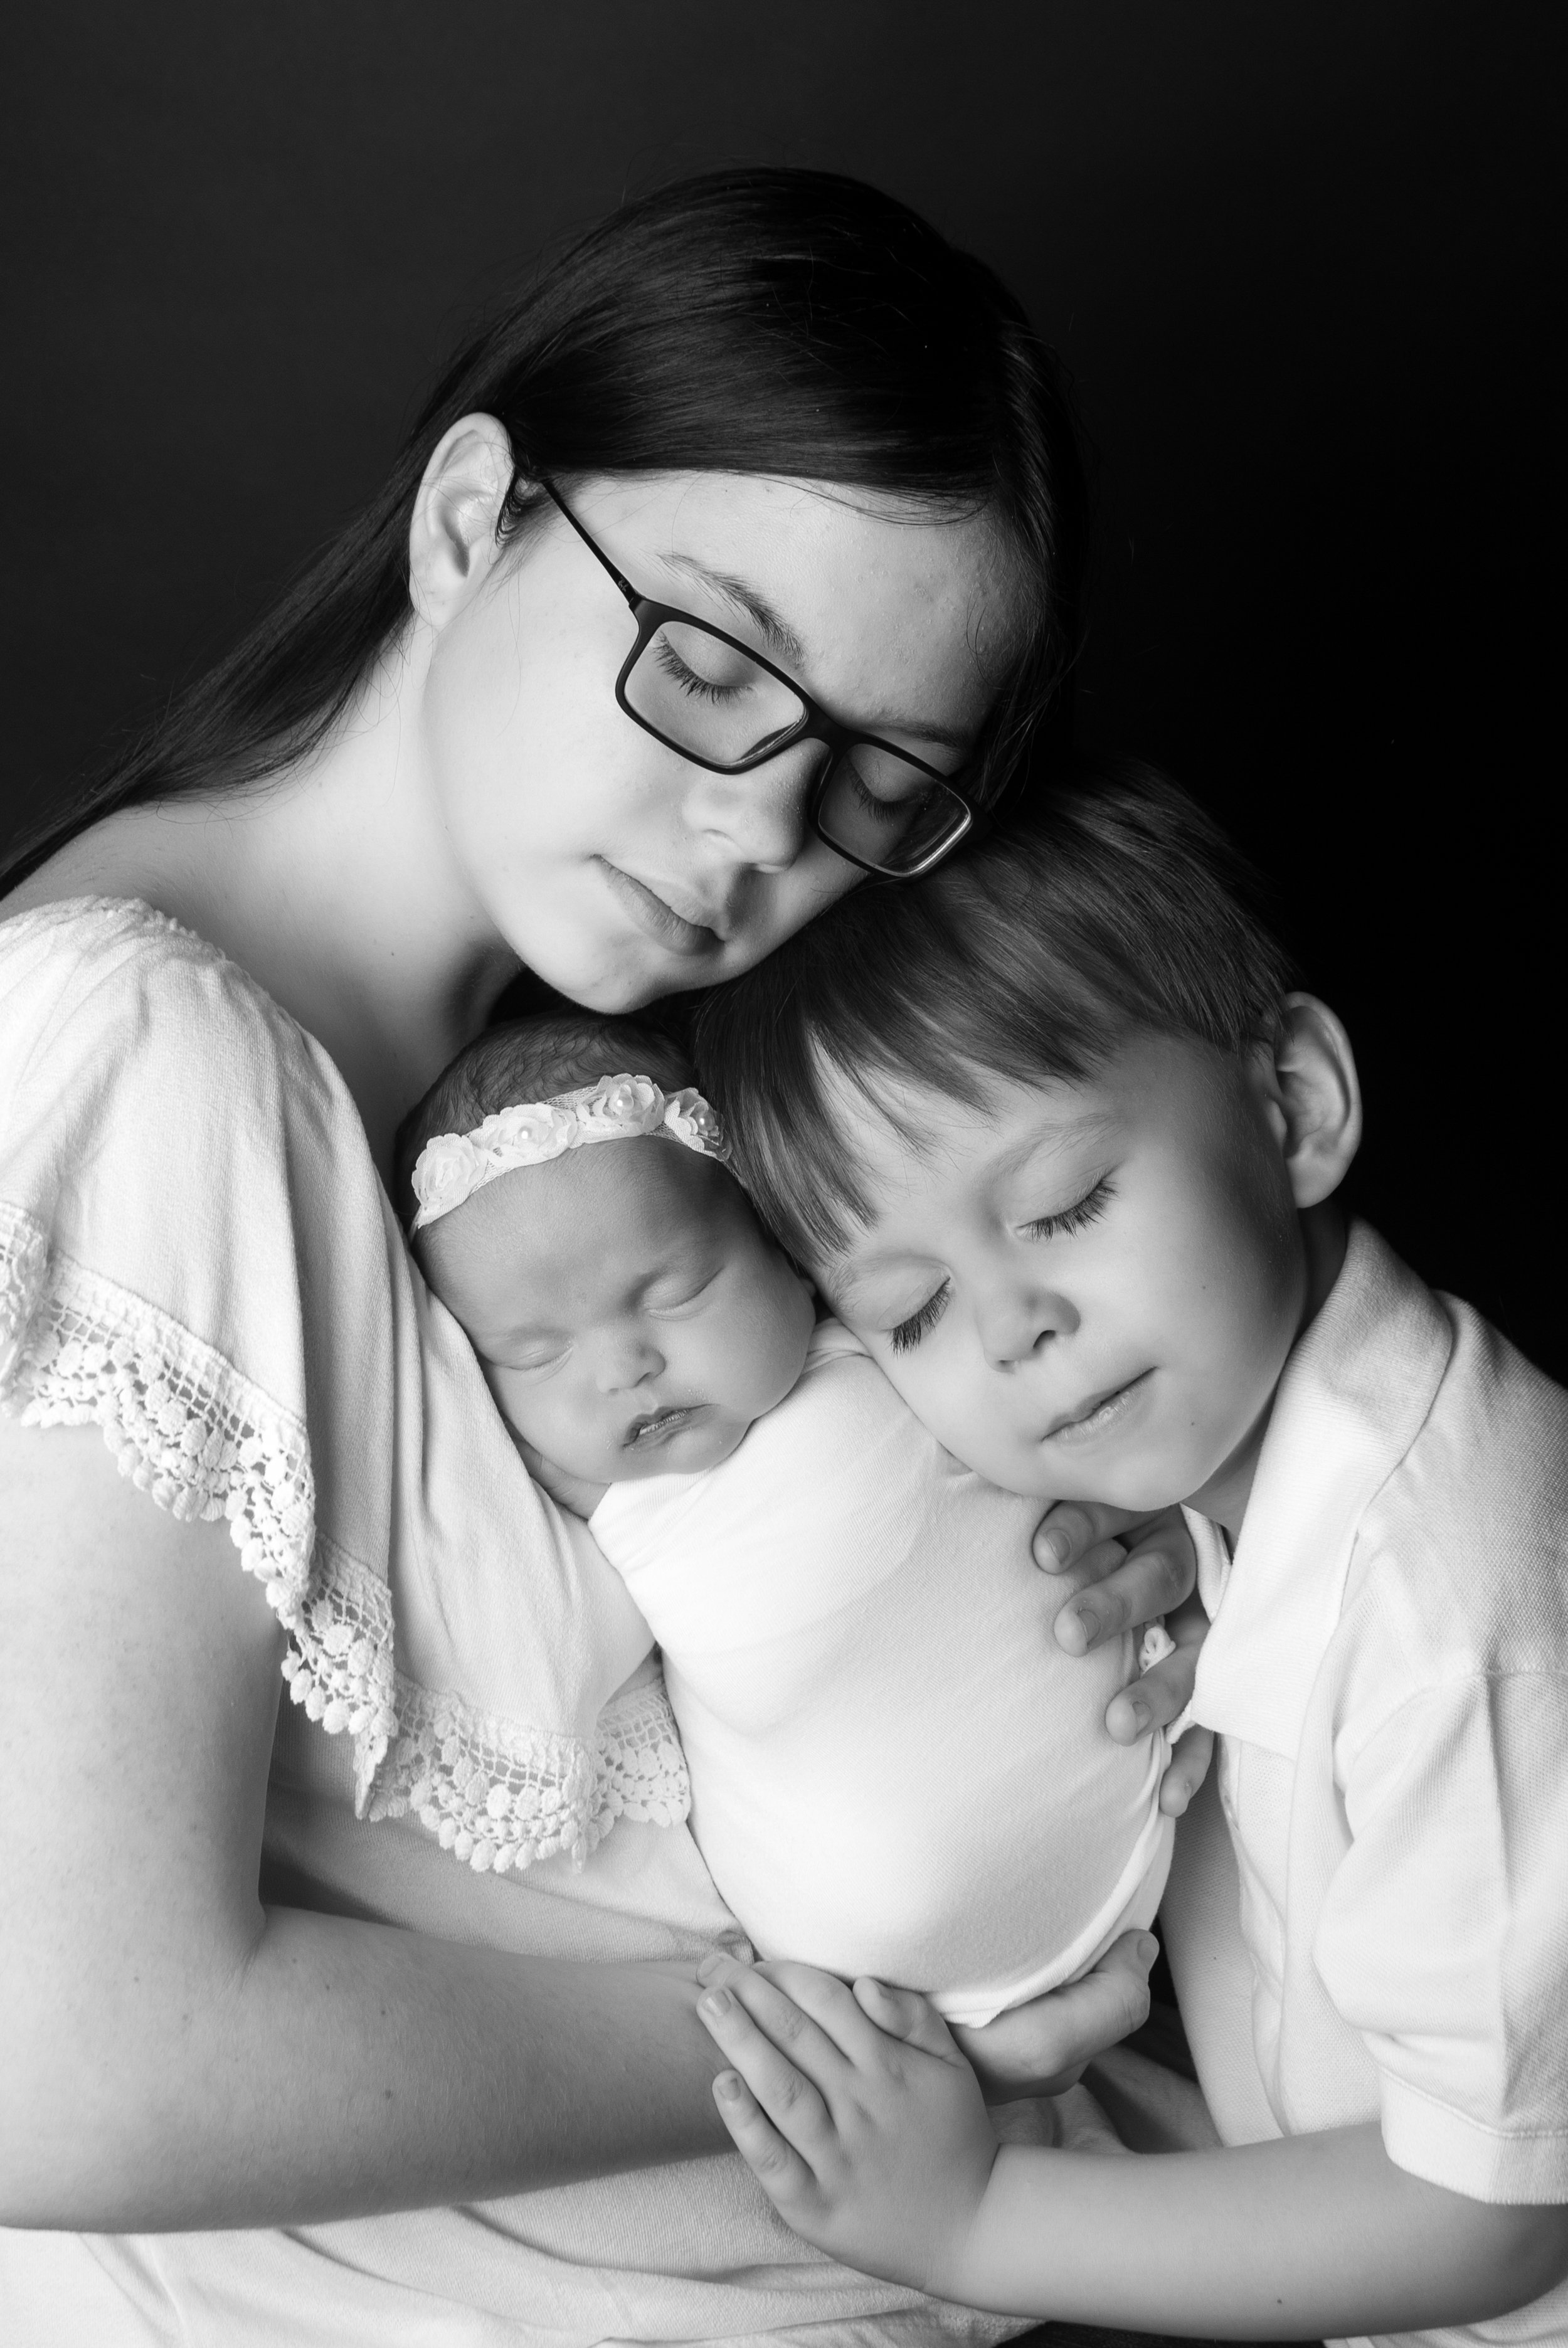 st-louis-newborn-photographer-black-and-white-picture-of-baby-girl-with-big-brother-and-sister-eye-closed.jpg